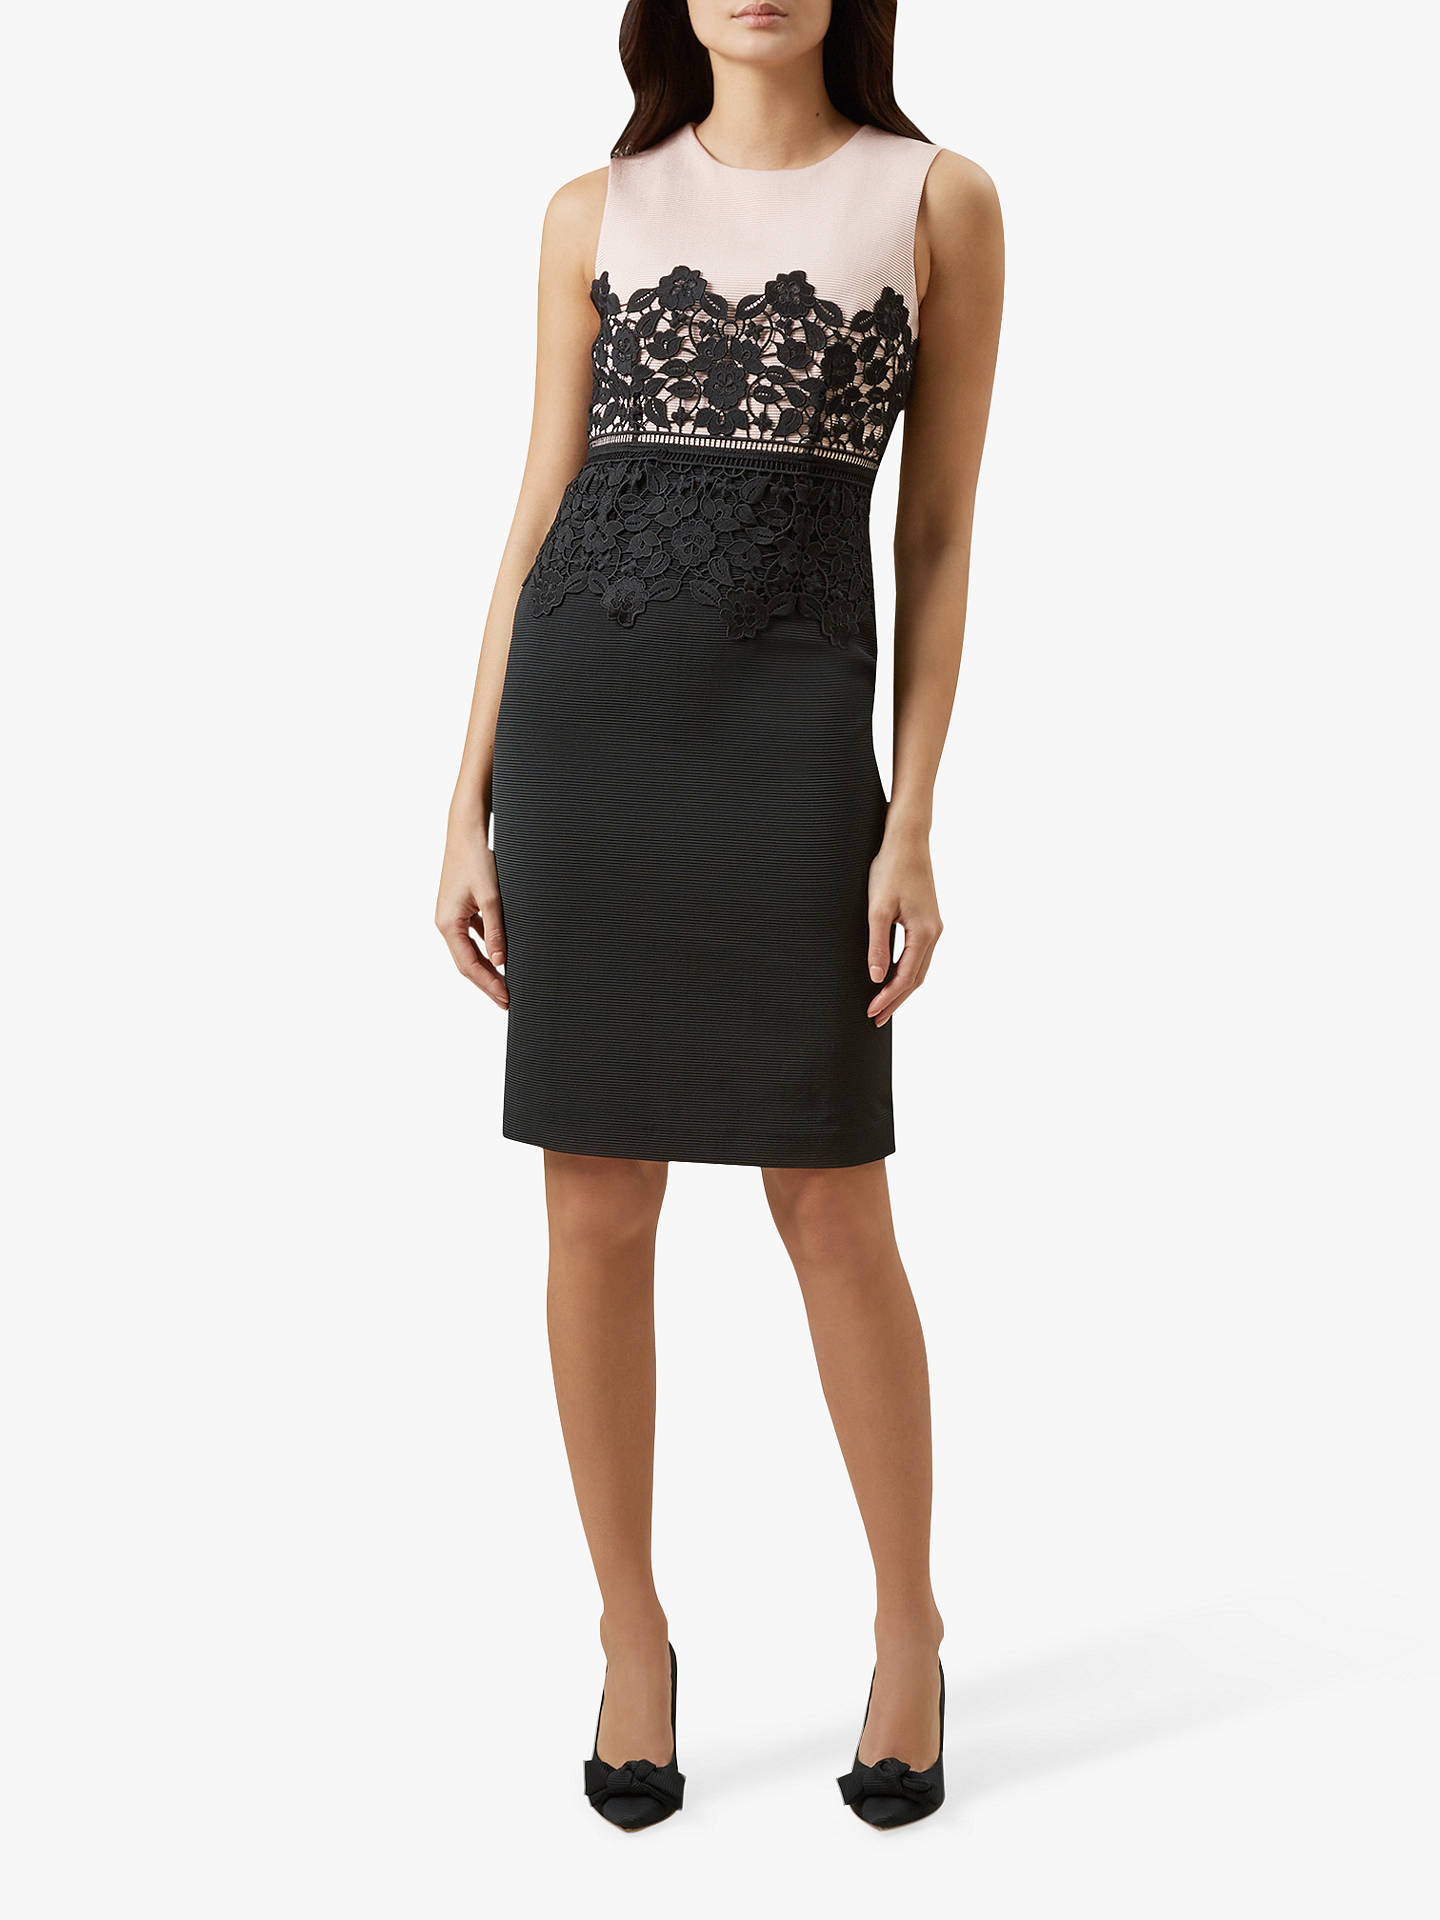 666263a6e029 Hobbs Seraphina Lace Detail Tailored Dress